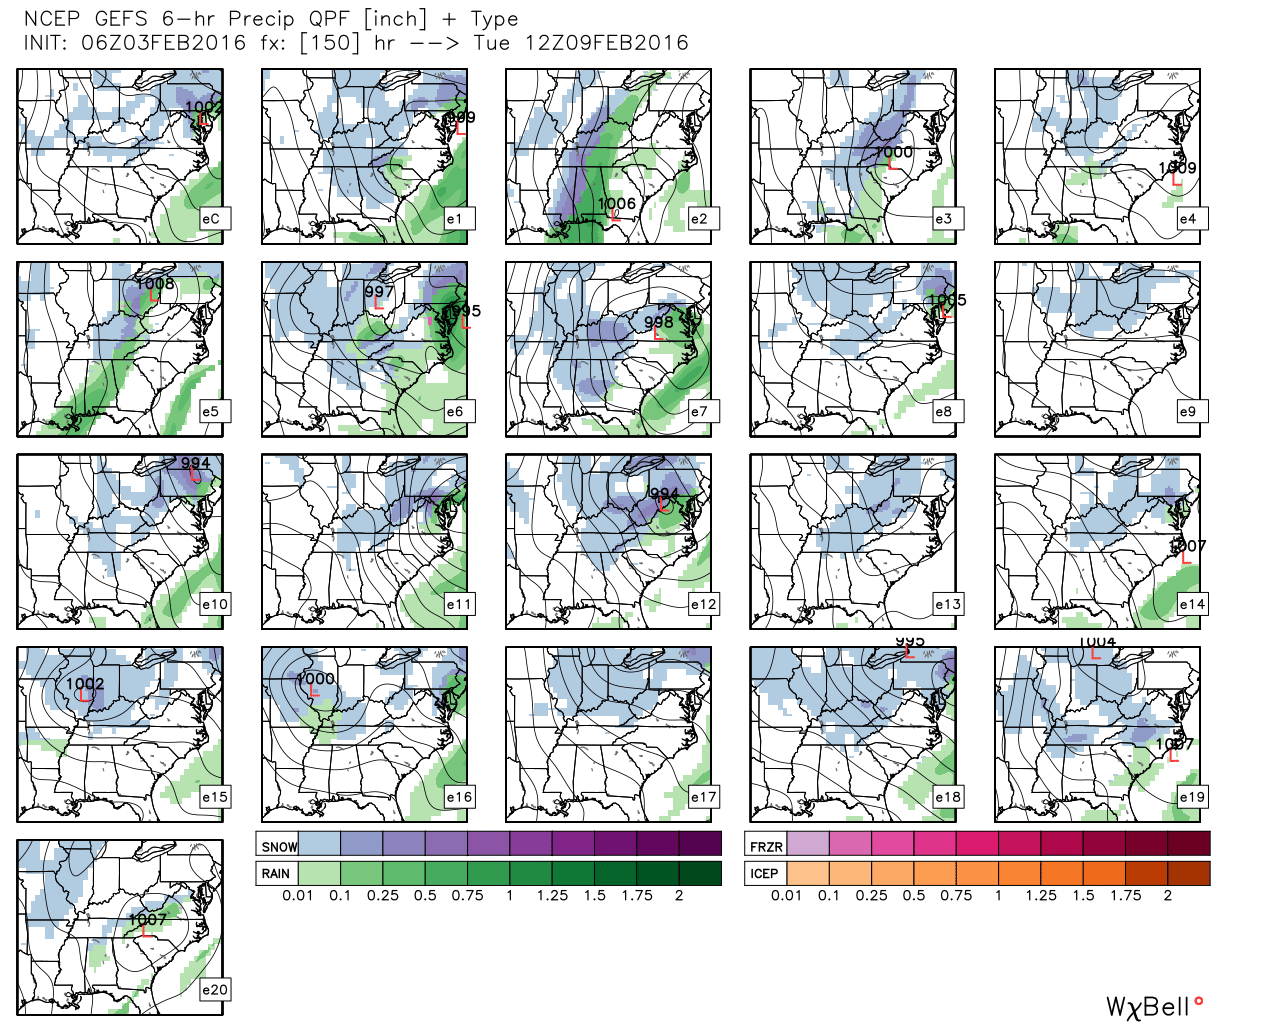 GFS ensembles. Source: Weatherbell.com